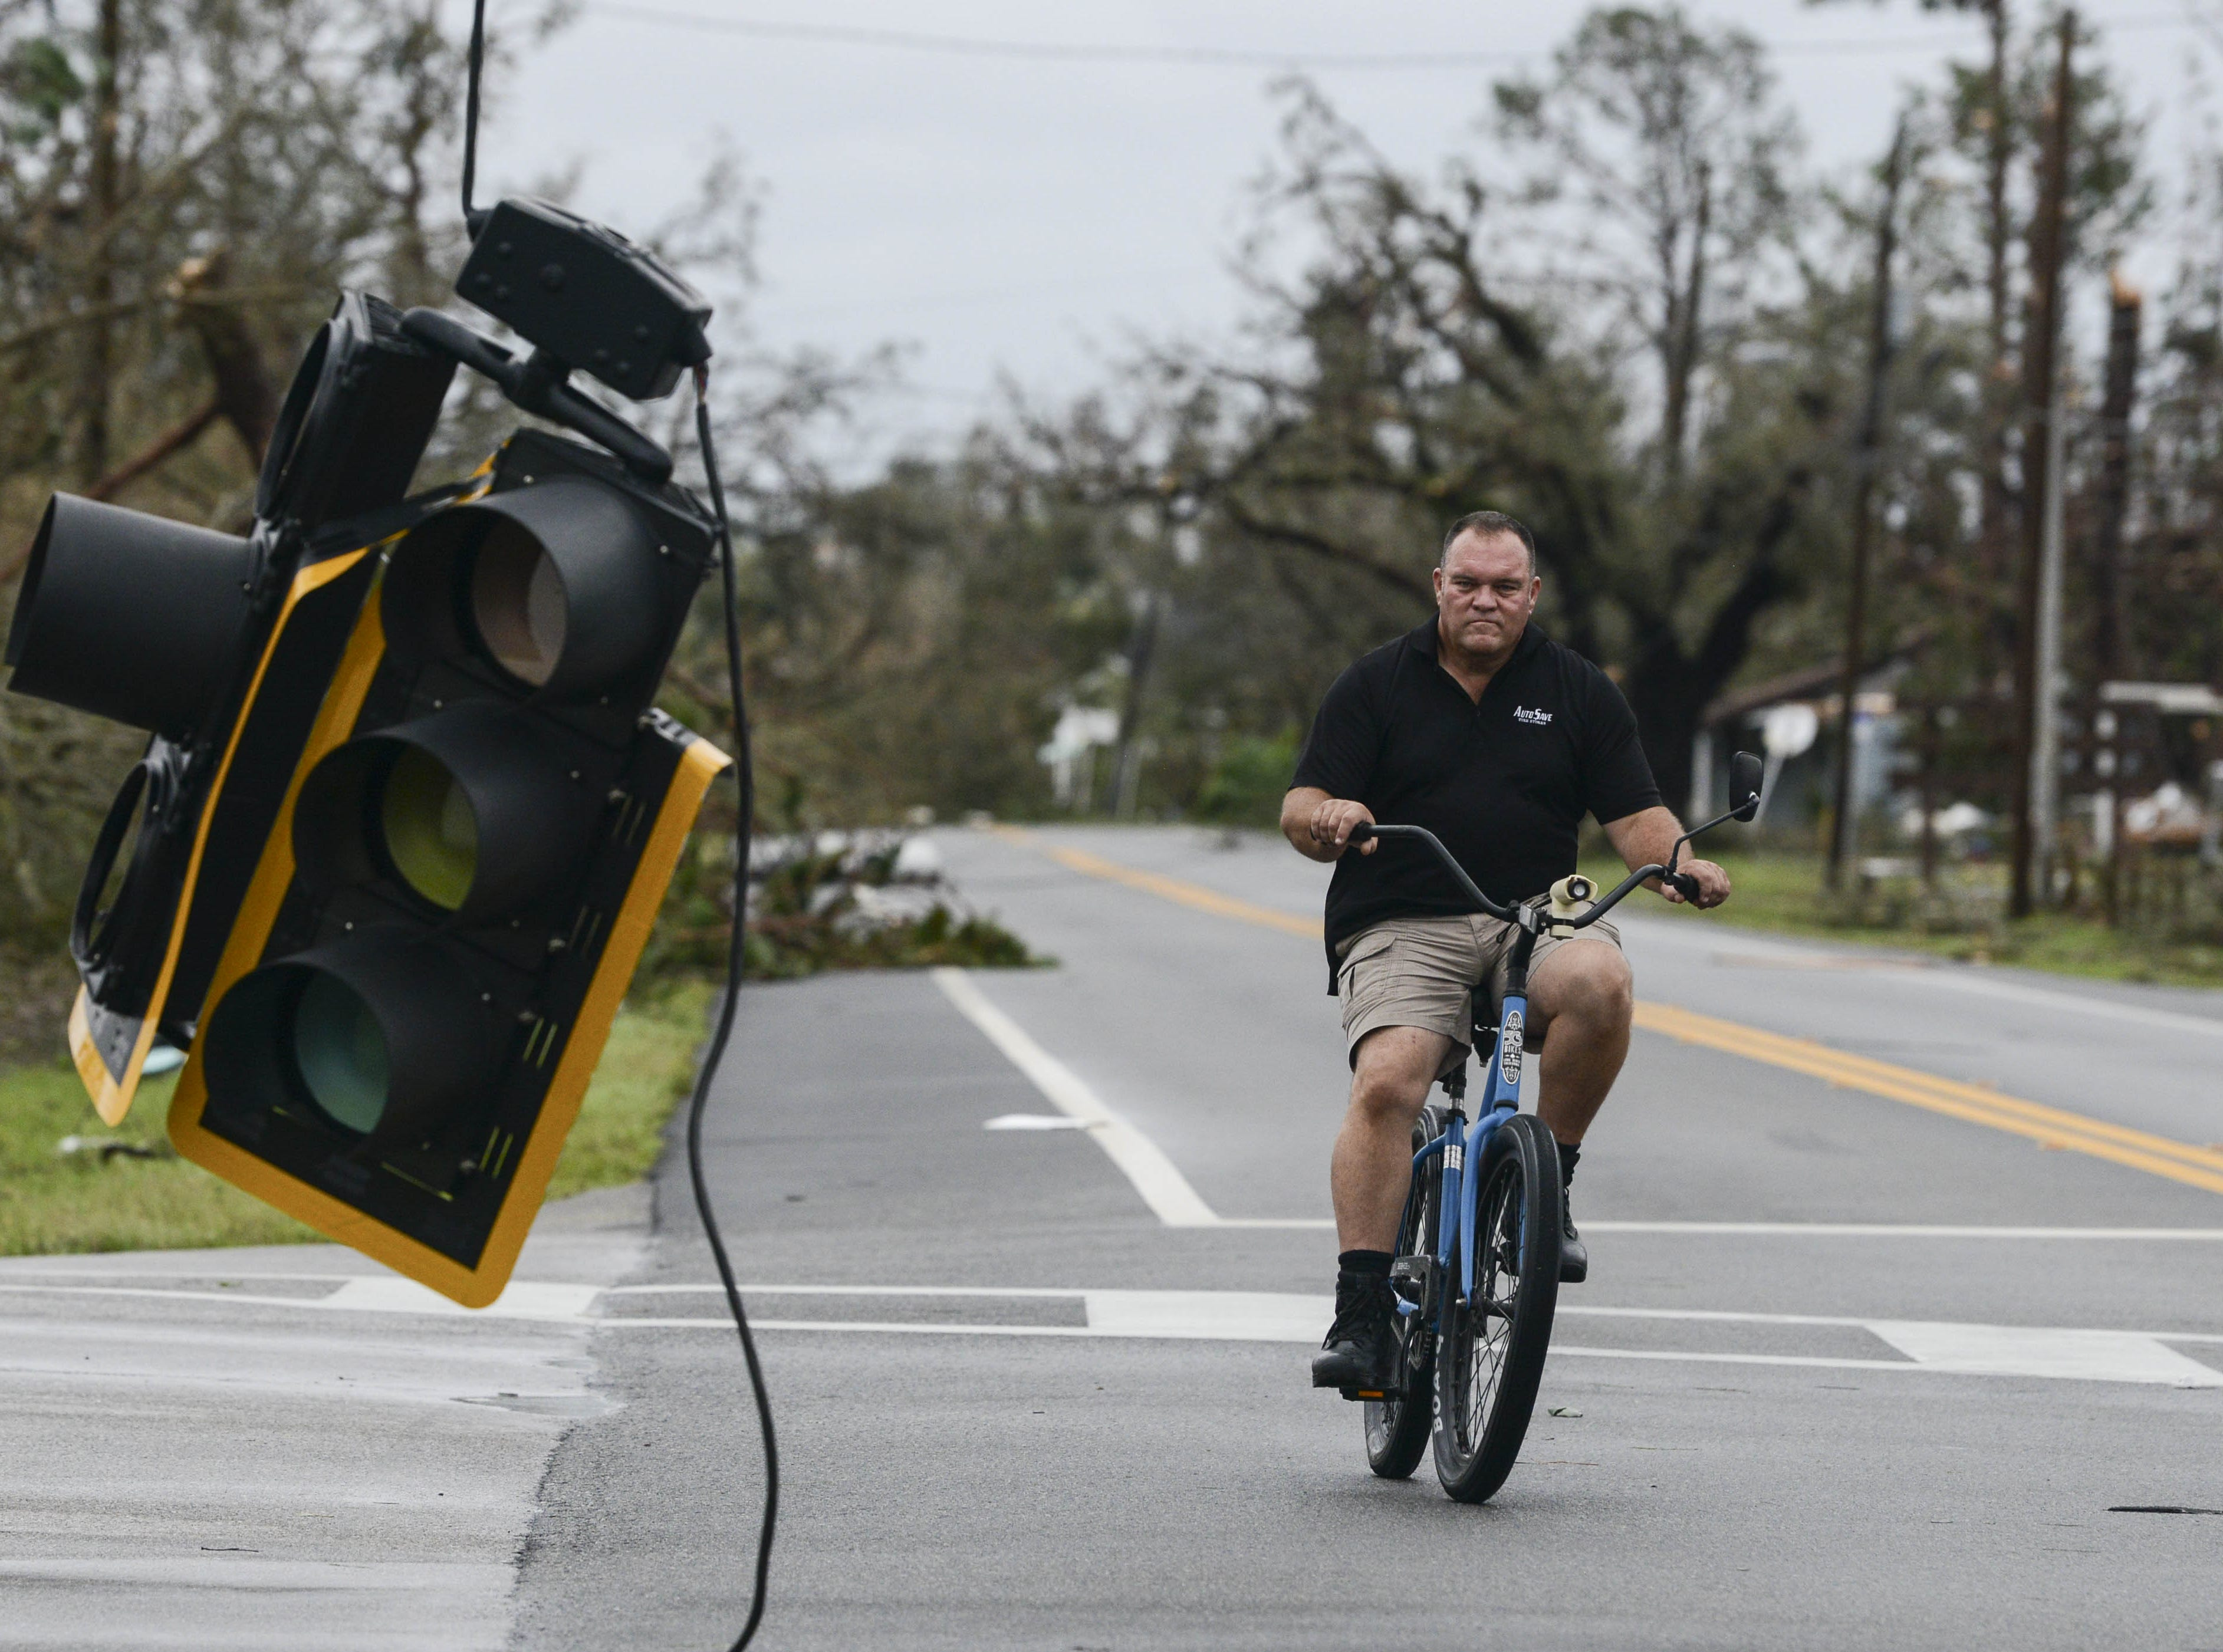 A bicyclist rides past a downed traffic light in Panama City, FL Wednesday after Hurricane Michael.